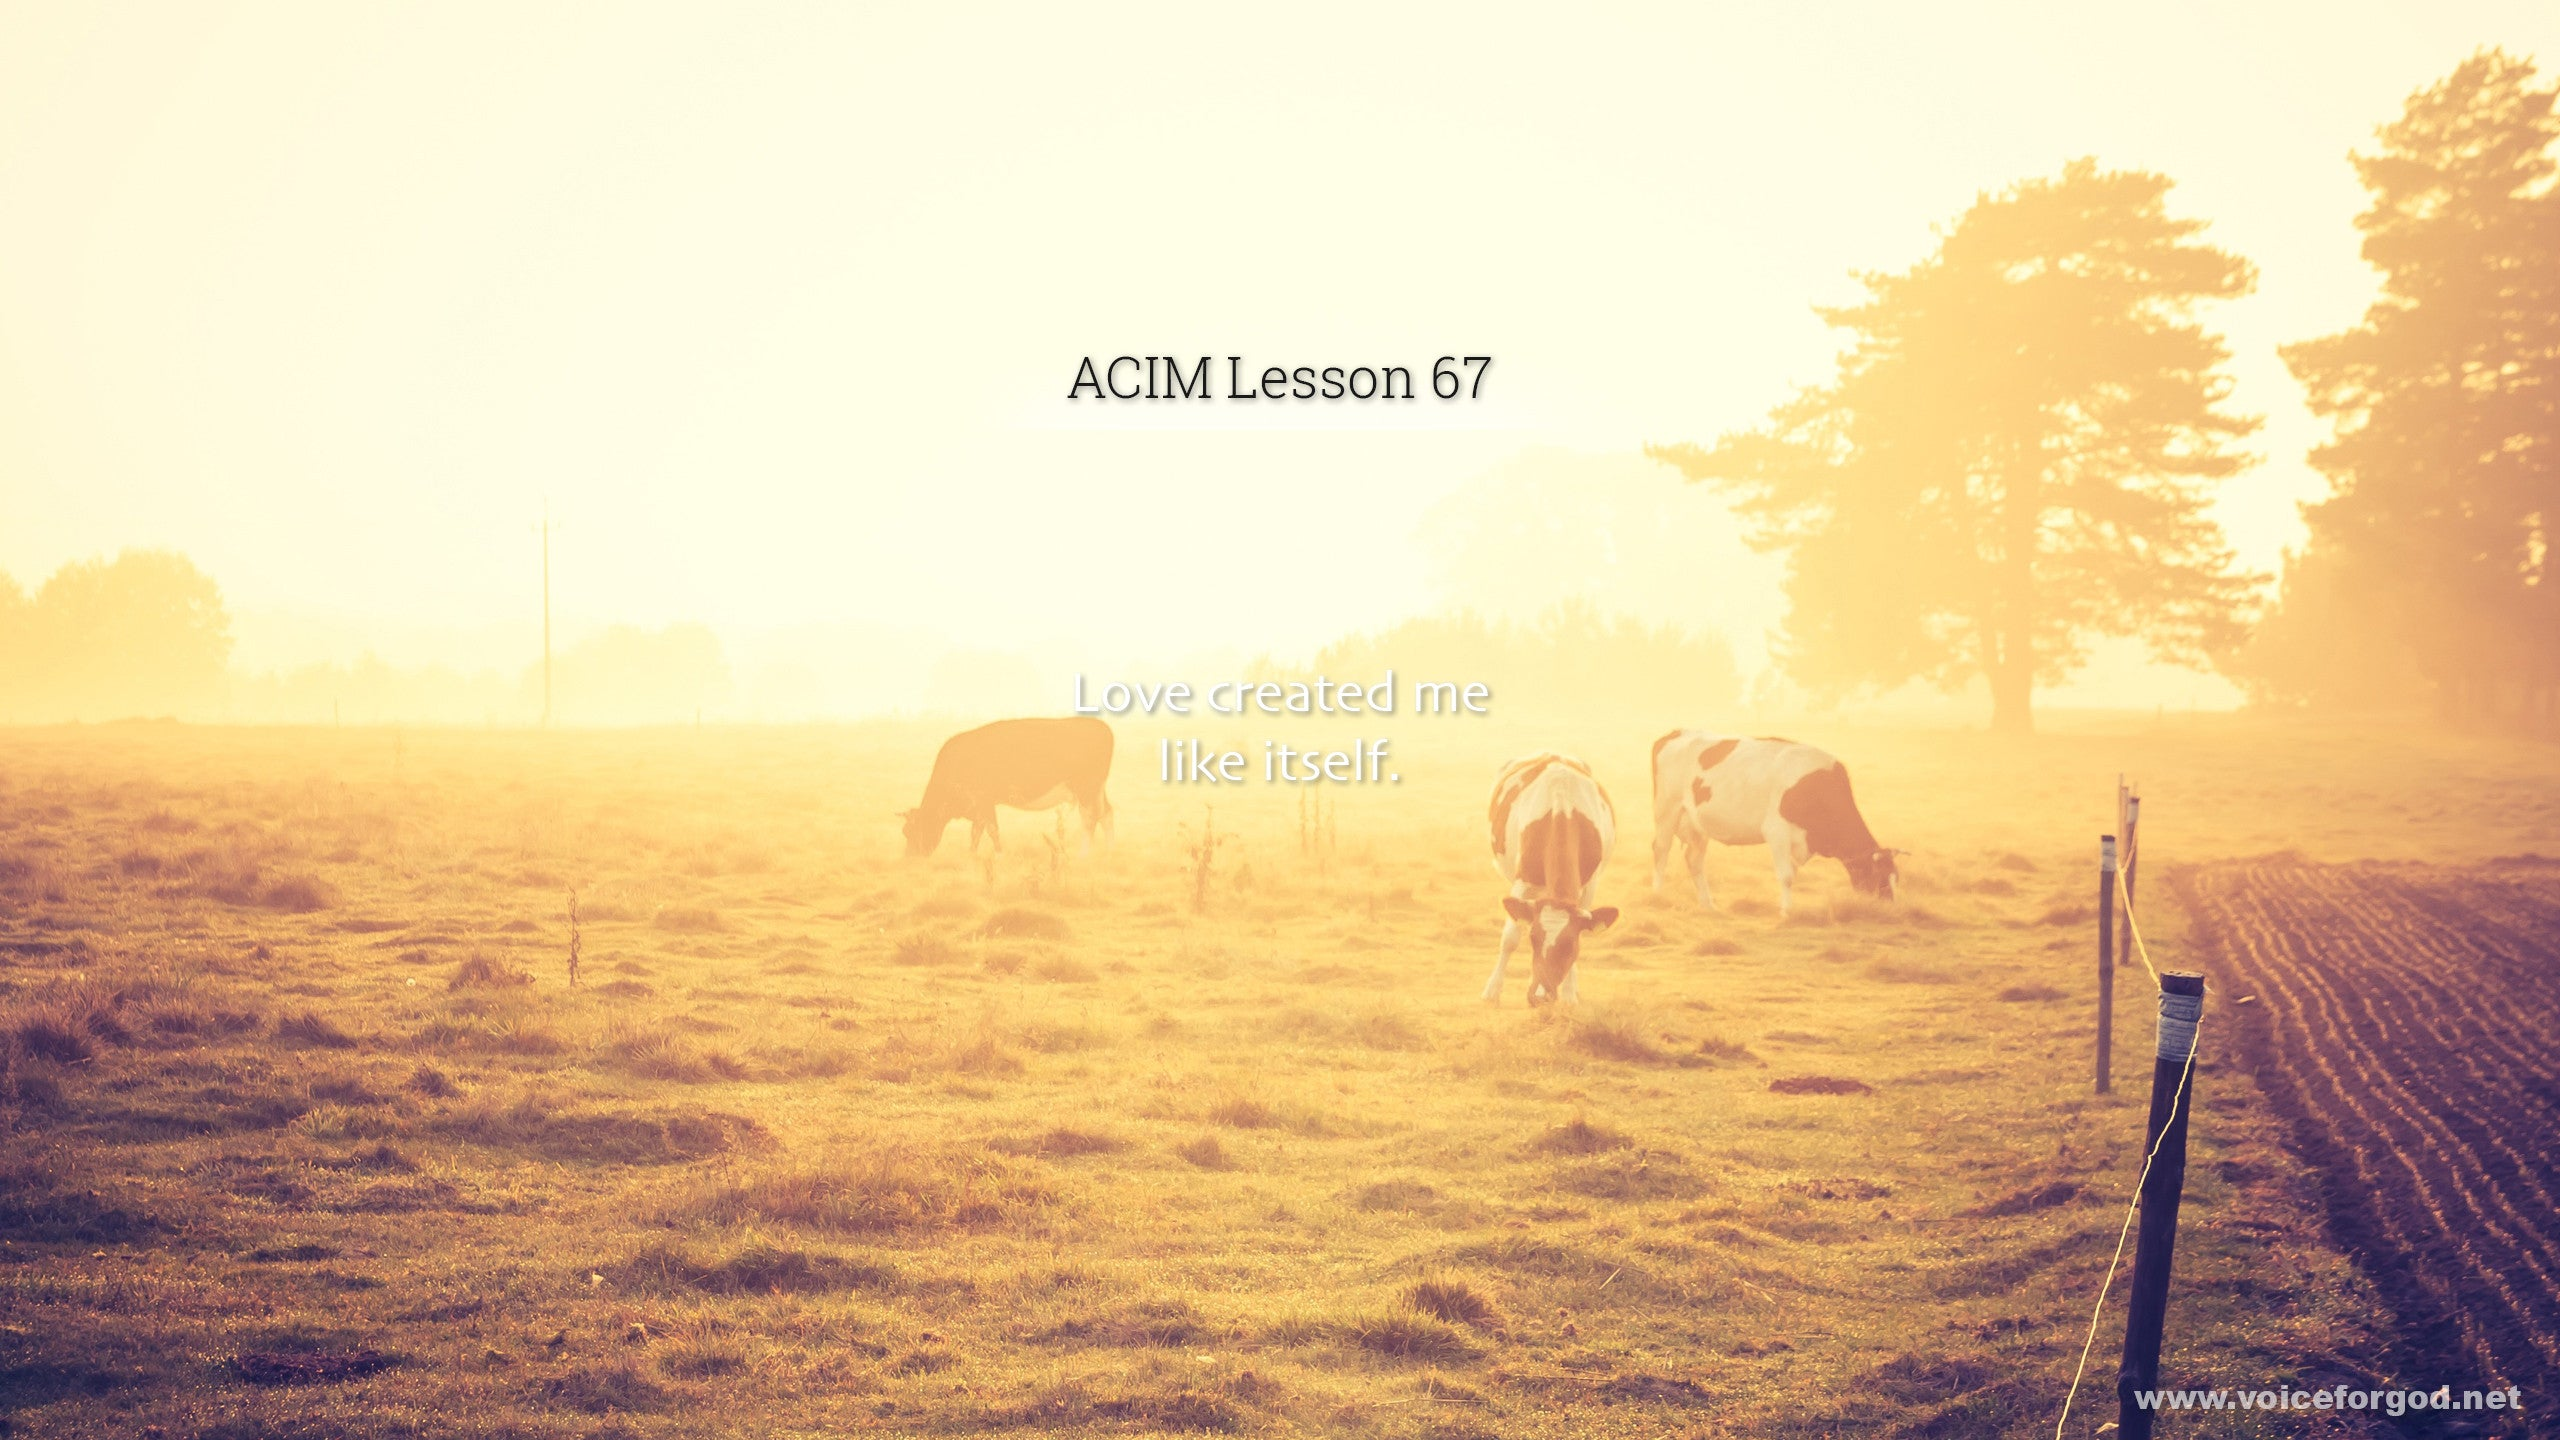 ACIM Lesson 67 - A Course in Miracles Workbook Lesson 67